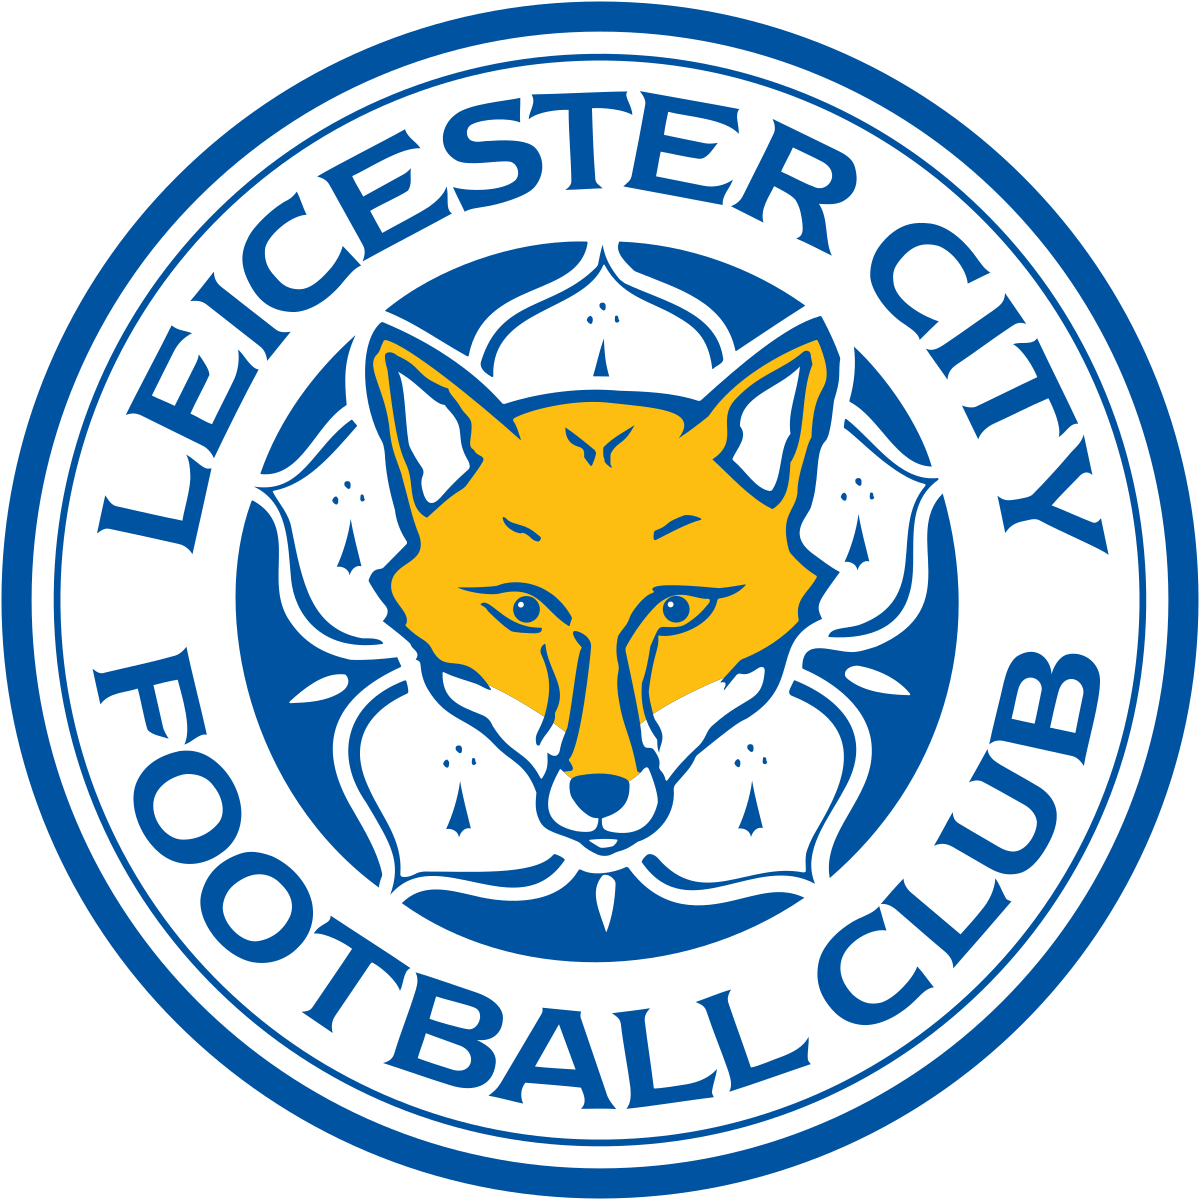 Logo Leicester City Fc Png Hdpng.com 1200 - Leicester City Fc, Transparent background PNG HD thumbnail